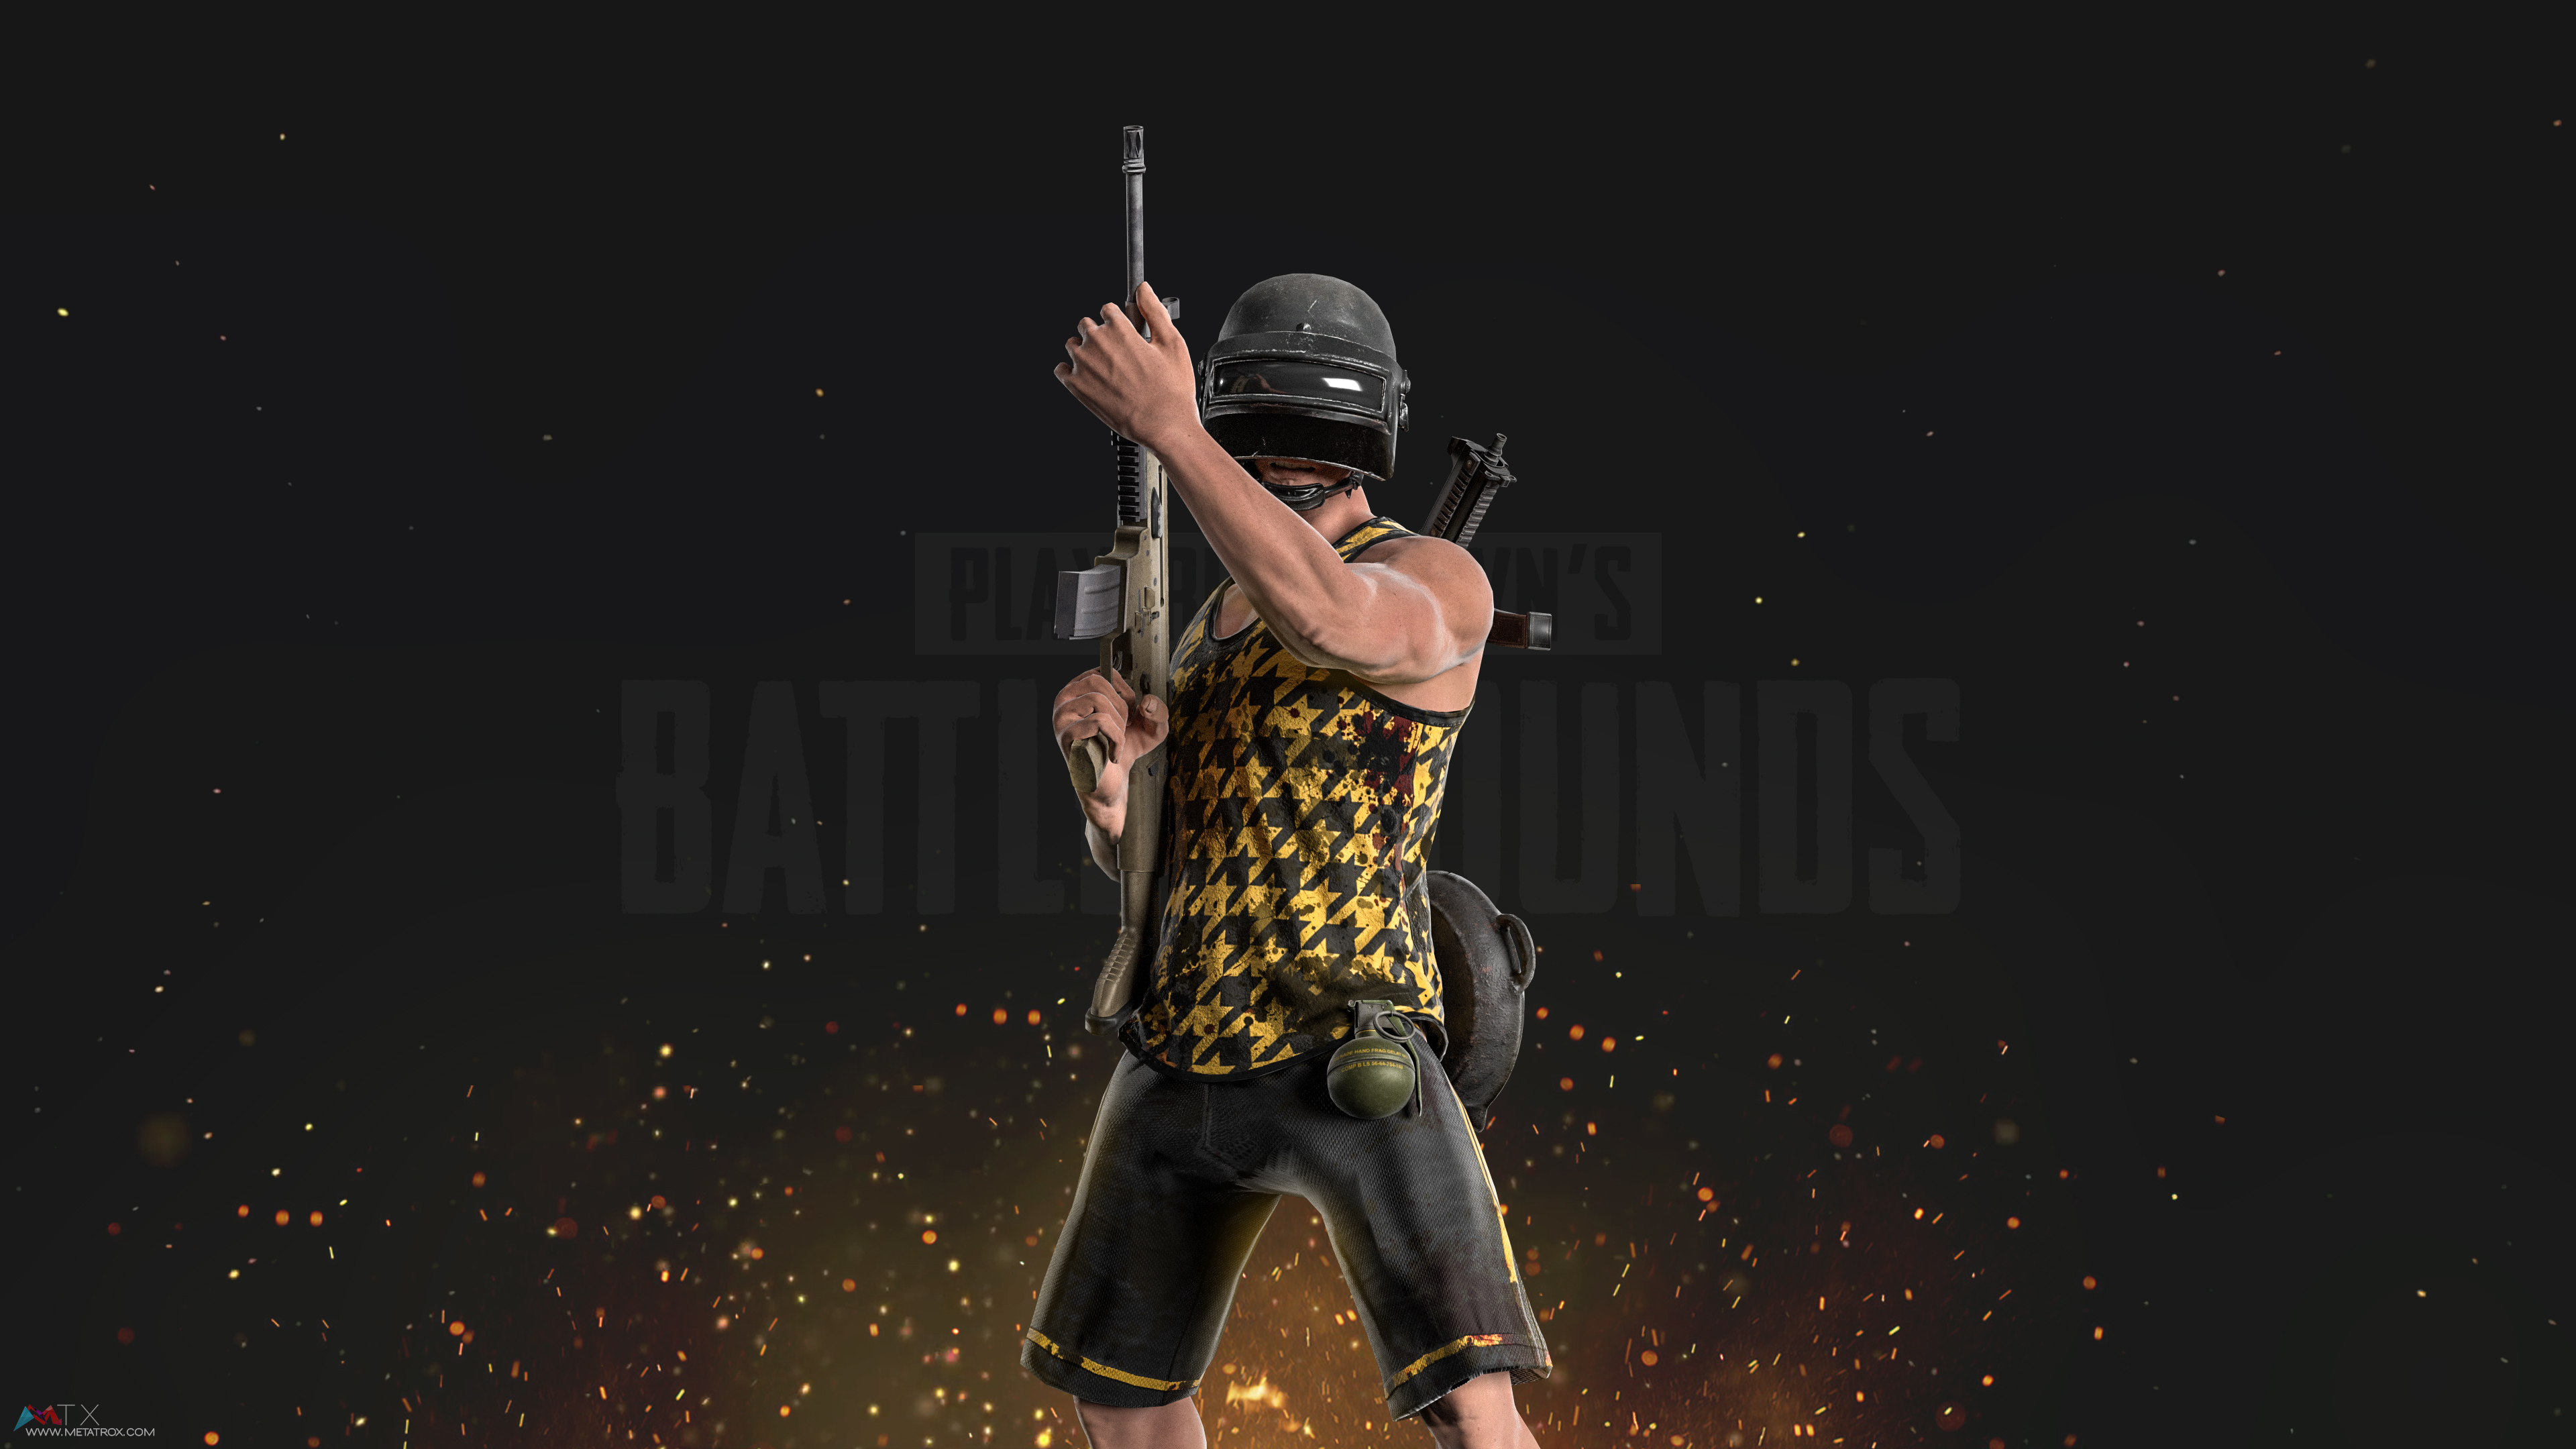 1920x1080 Pubg Characters 4k Laptop Full Hd 1080p Hd 4k